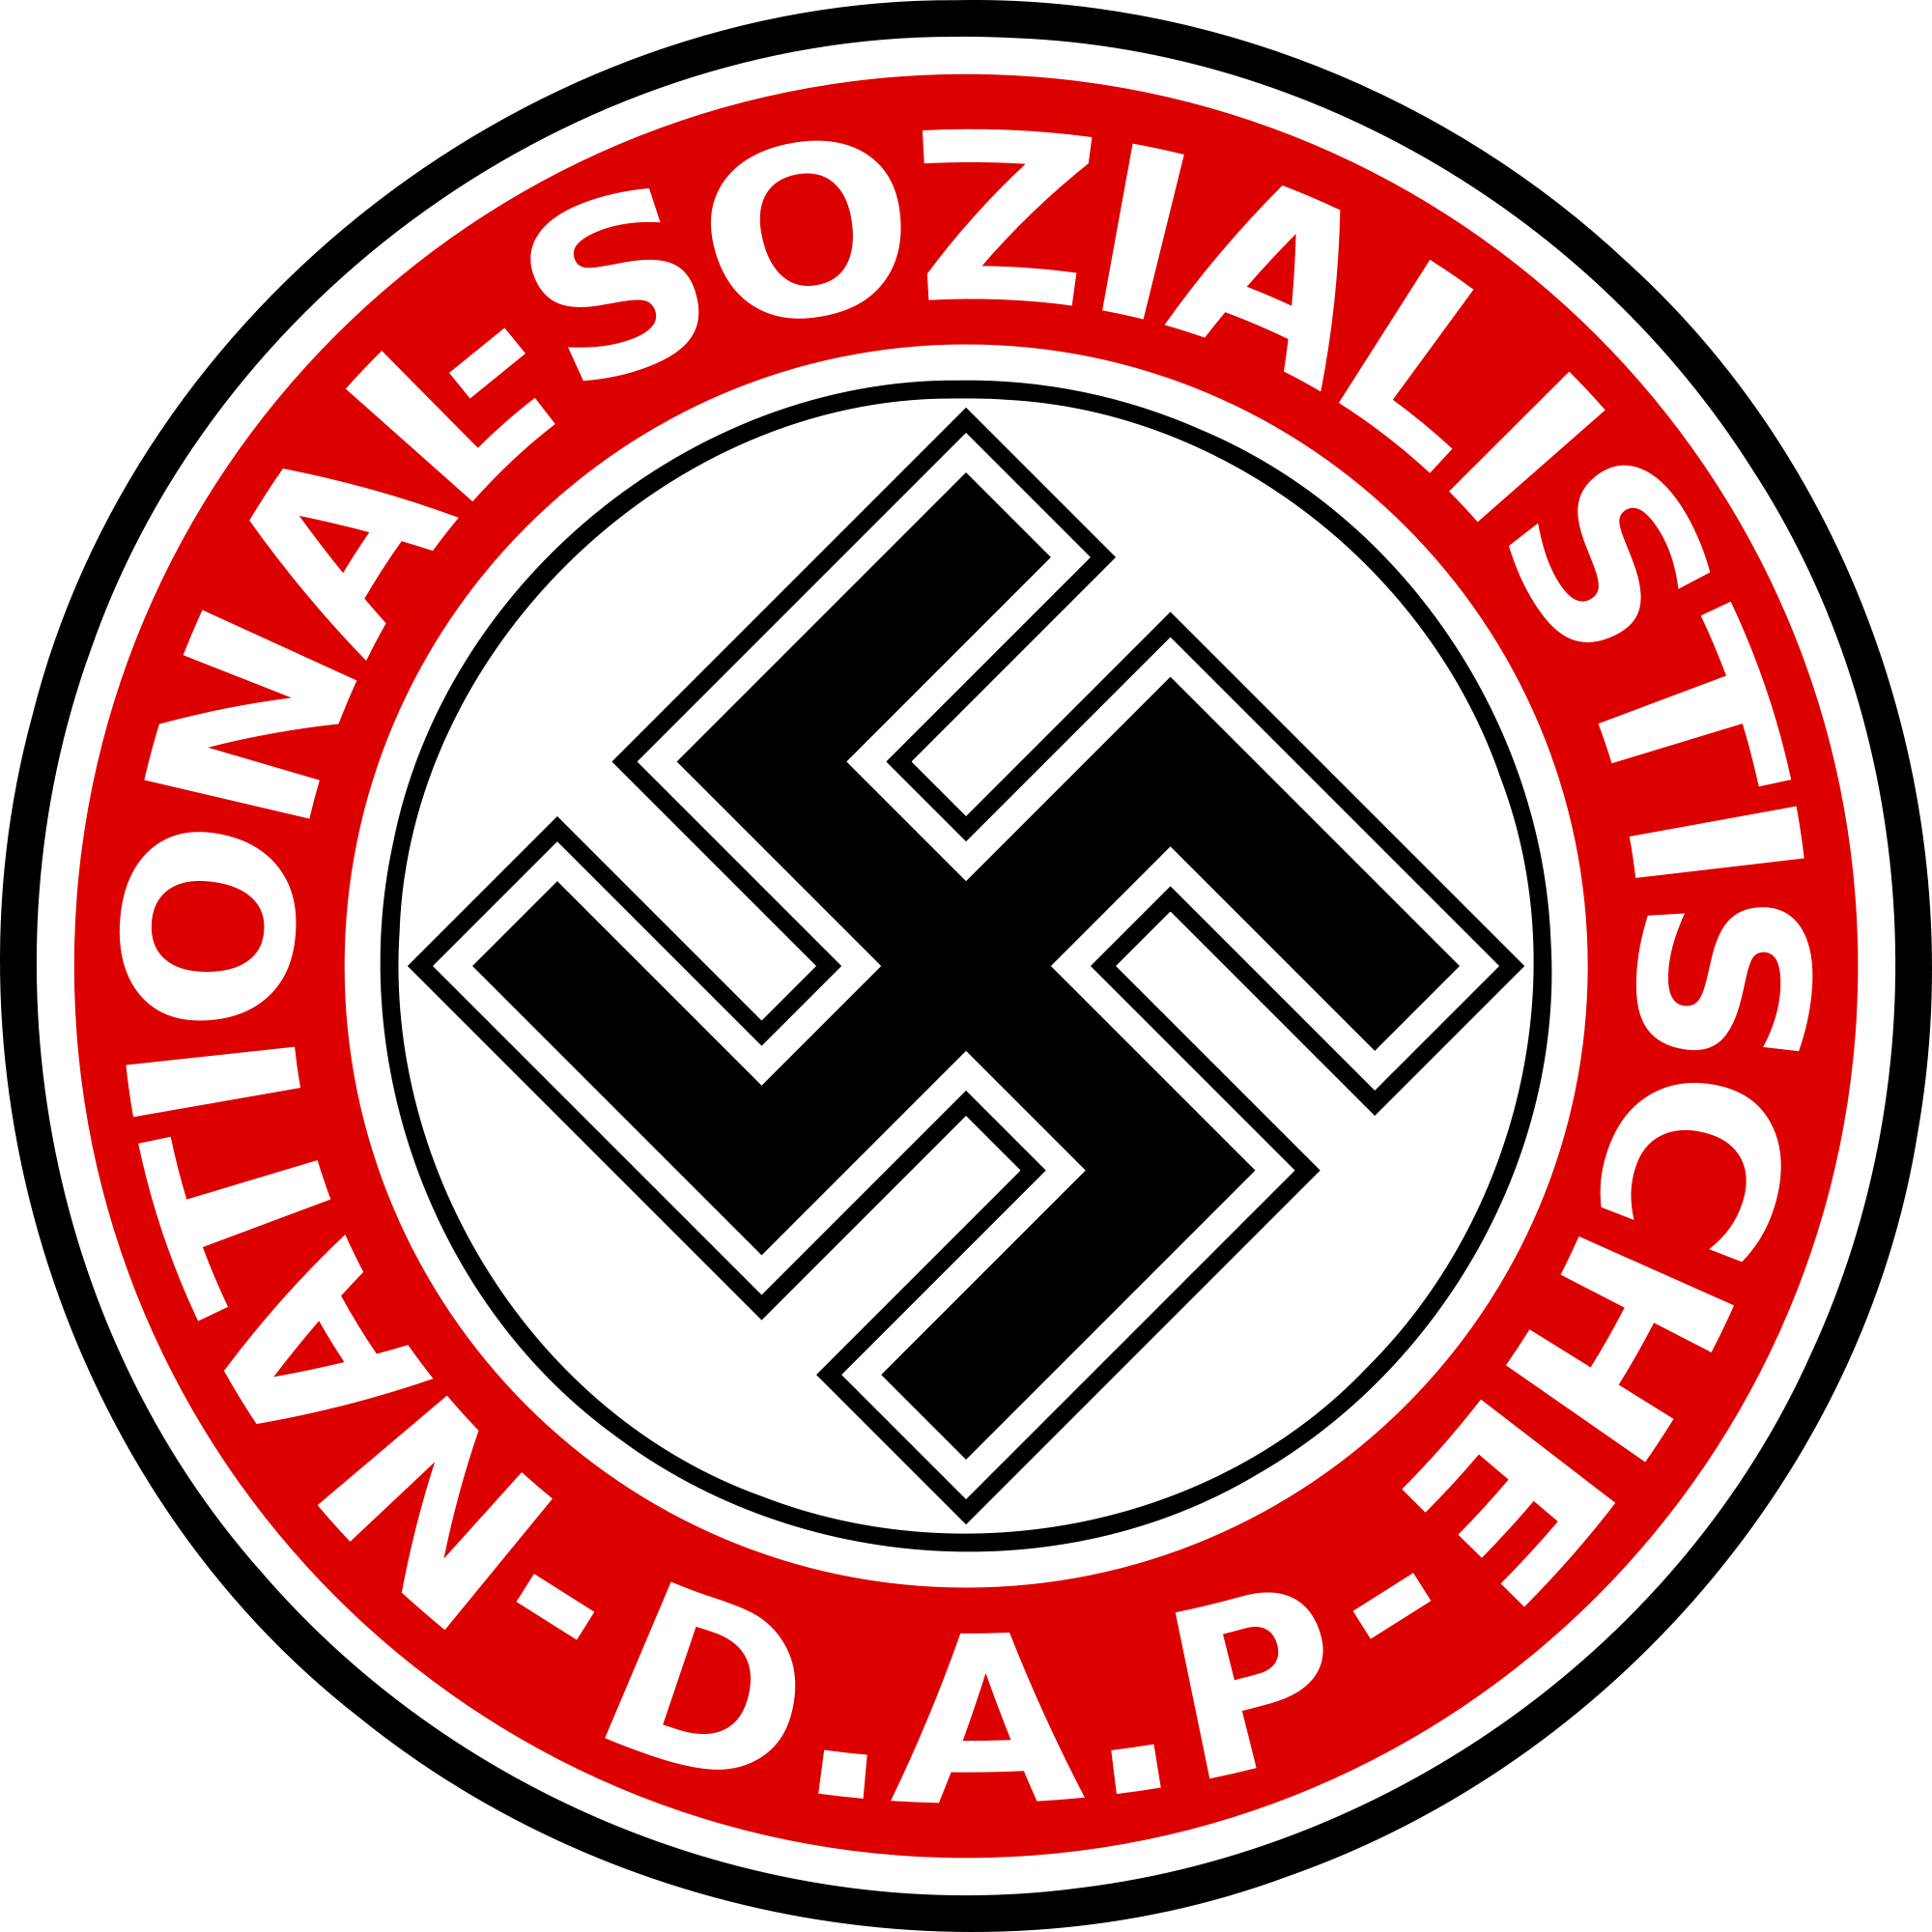 National socialist german workers party steme medalii embleme july 1921 adolf hitler becomes leader of the national socialist german workers party biocorpaavc Image collections